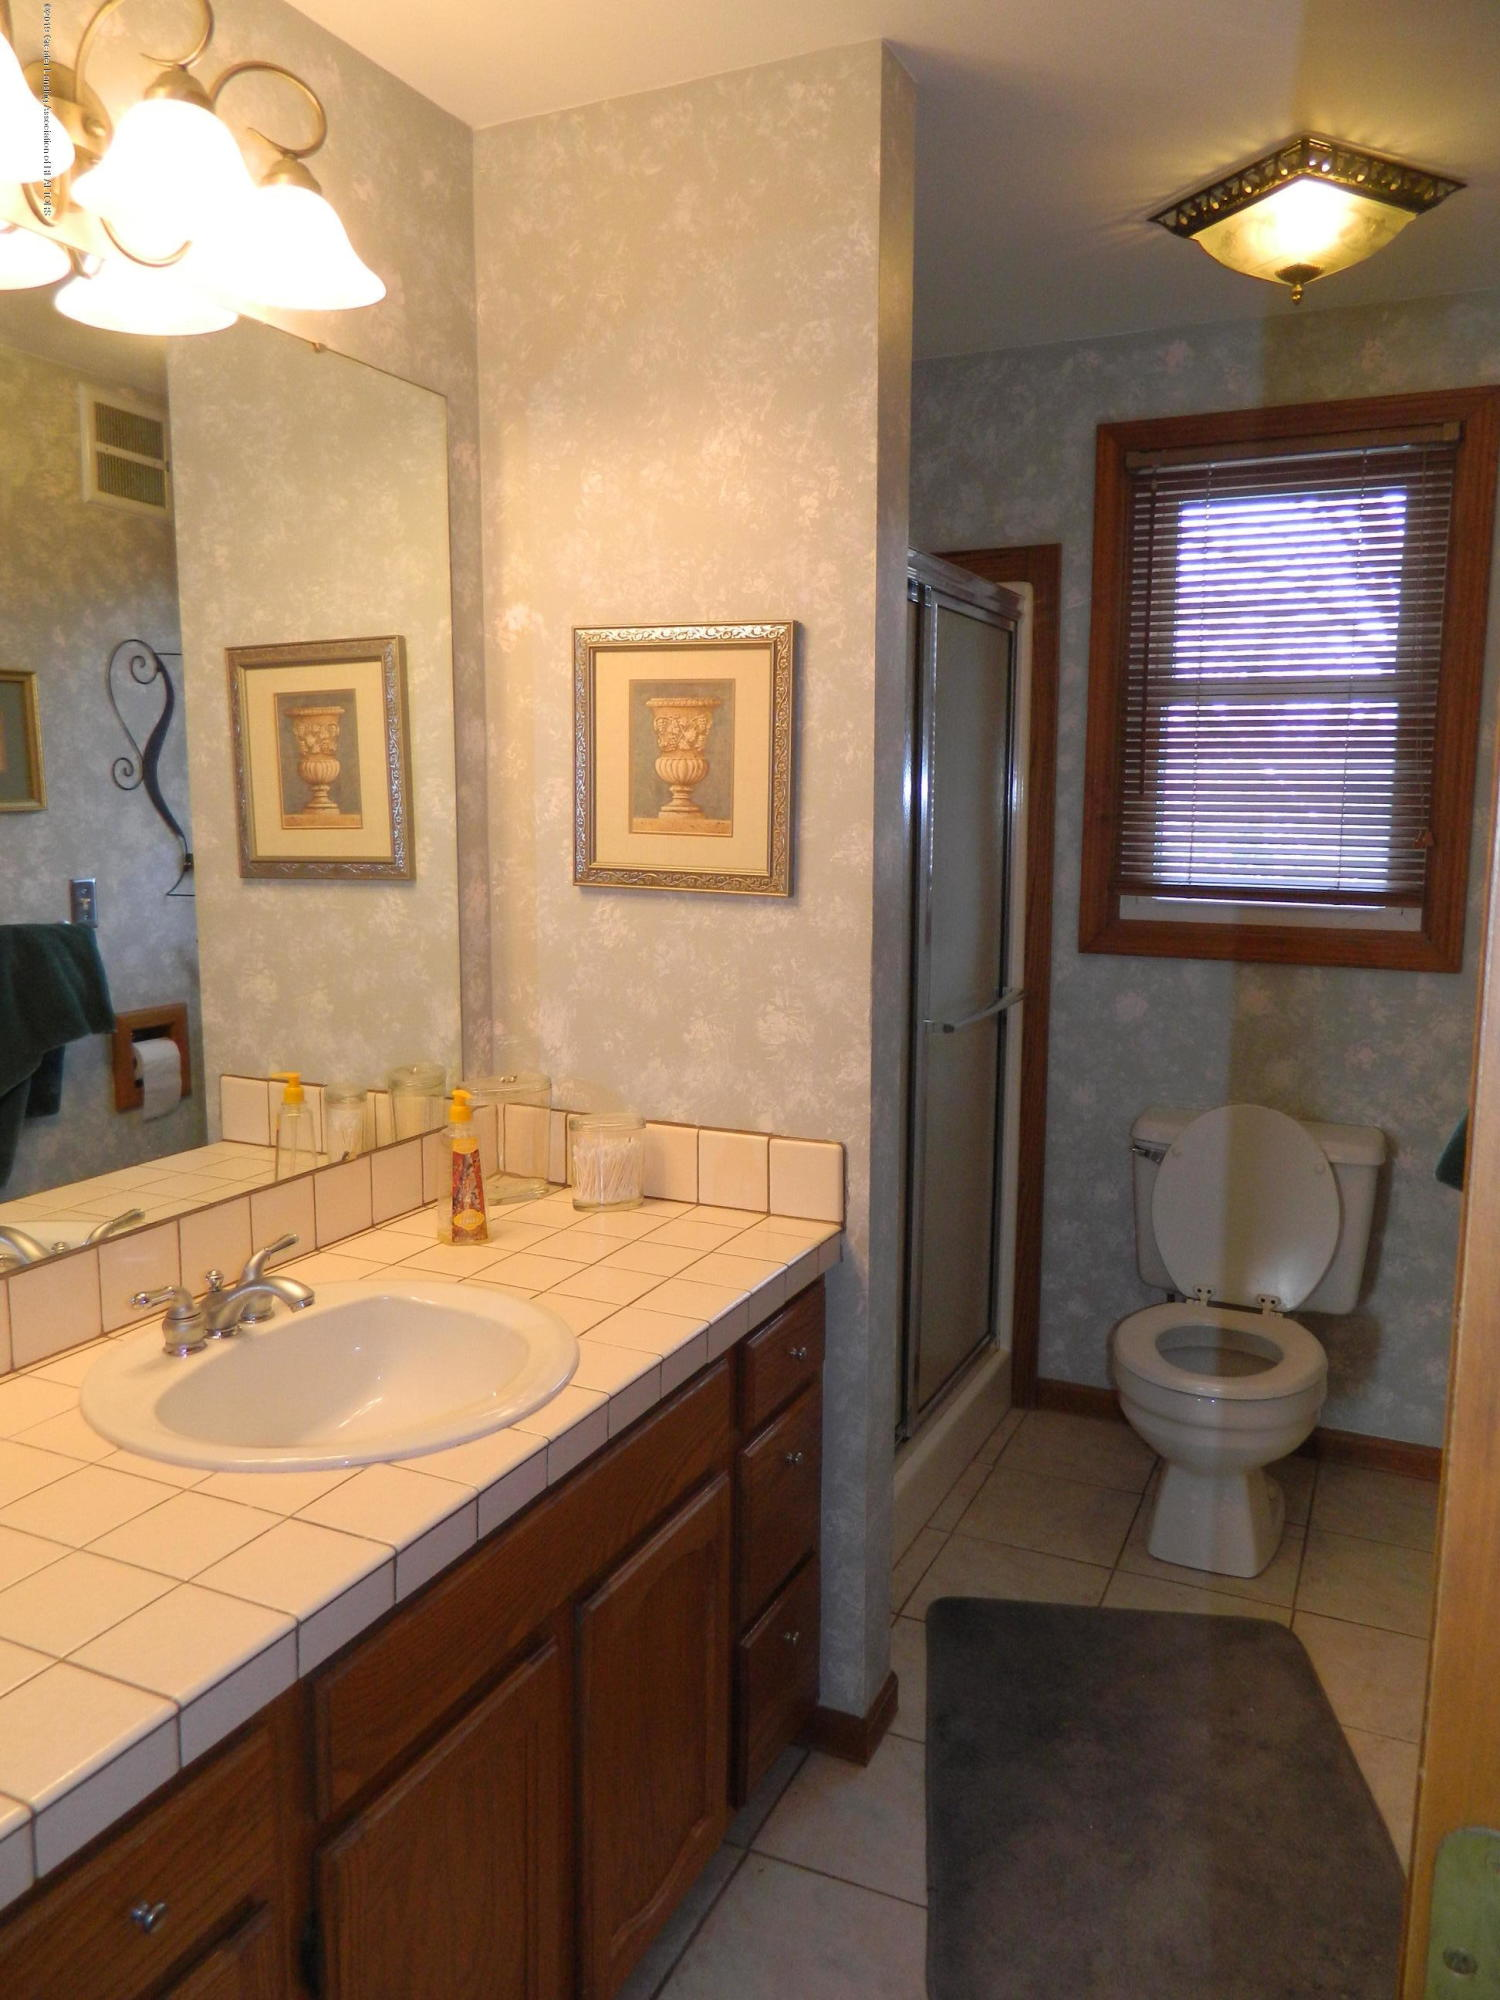 1560 Birchwood Dr - Bathroom - 14